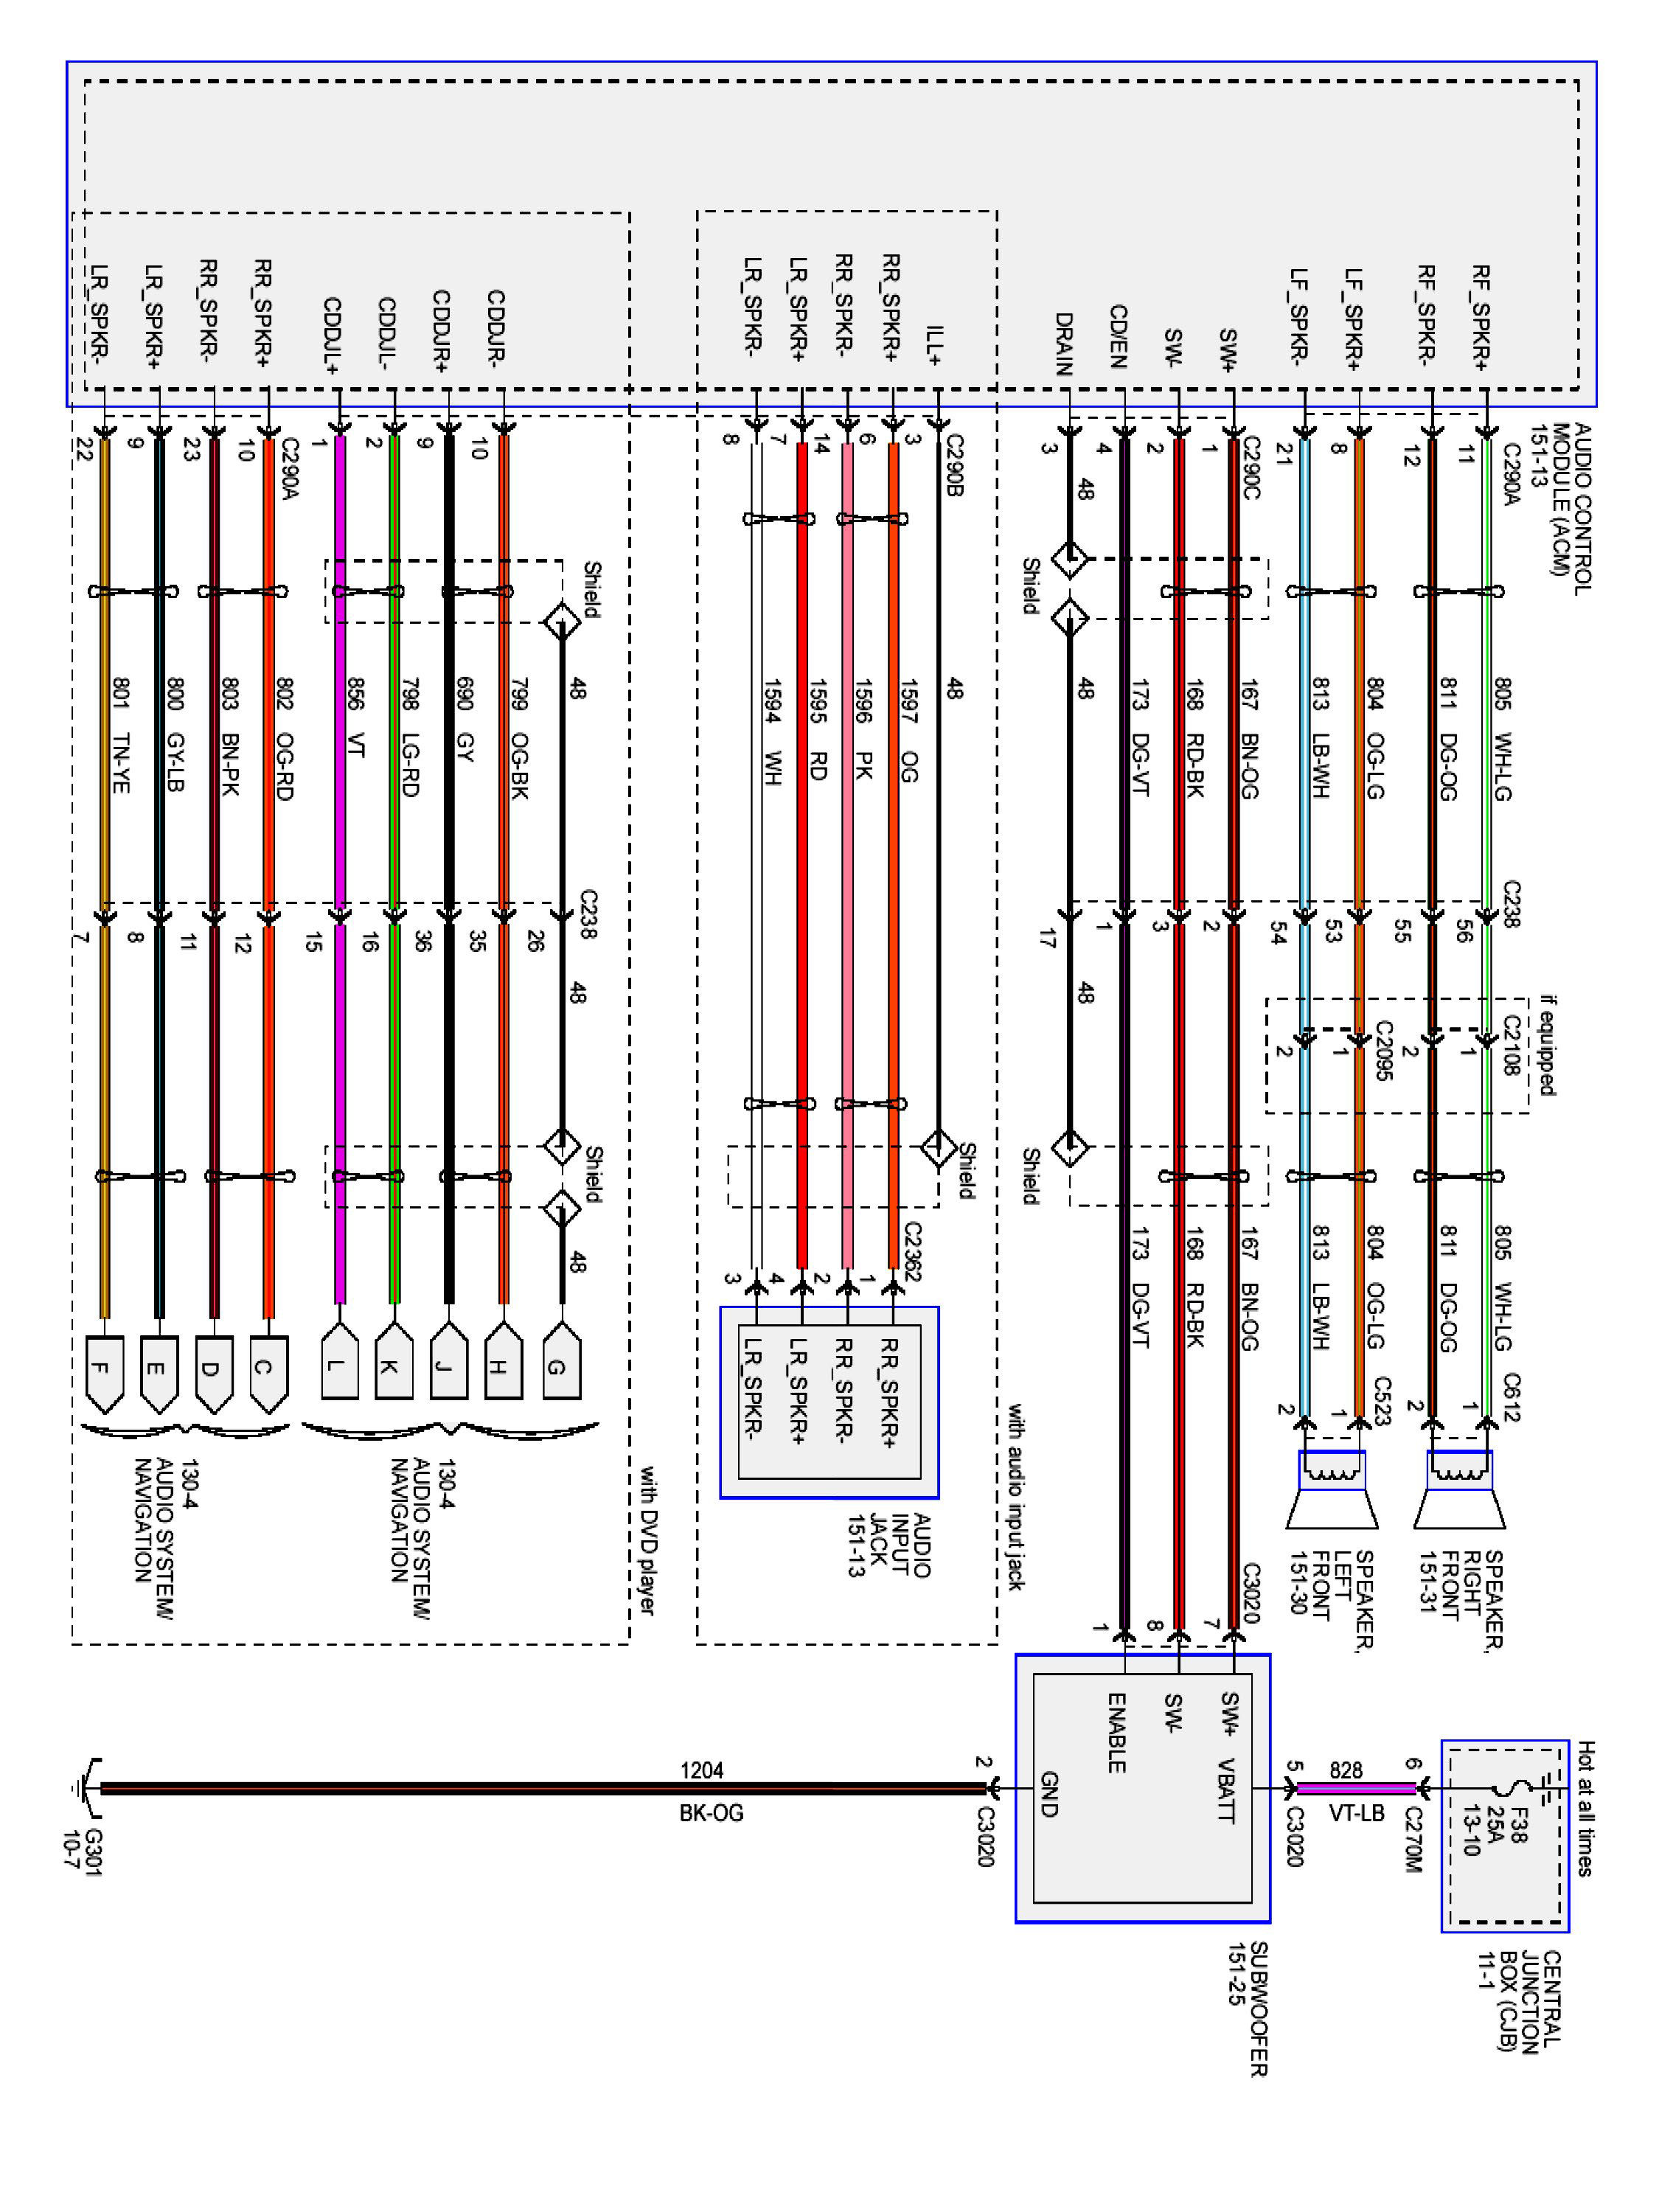 wiring diagram for 2006 ford f150 the wiring diagram 2004 ford focus audio wiring diagram diagram wiring diagram